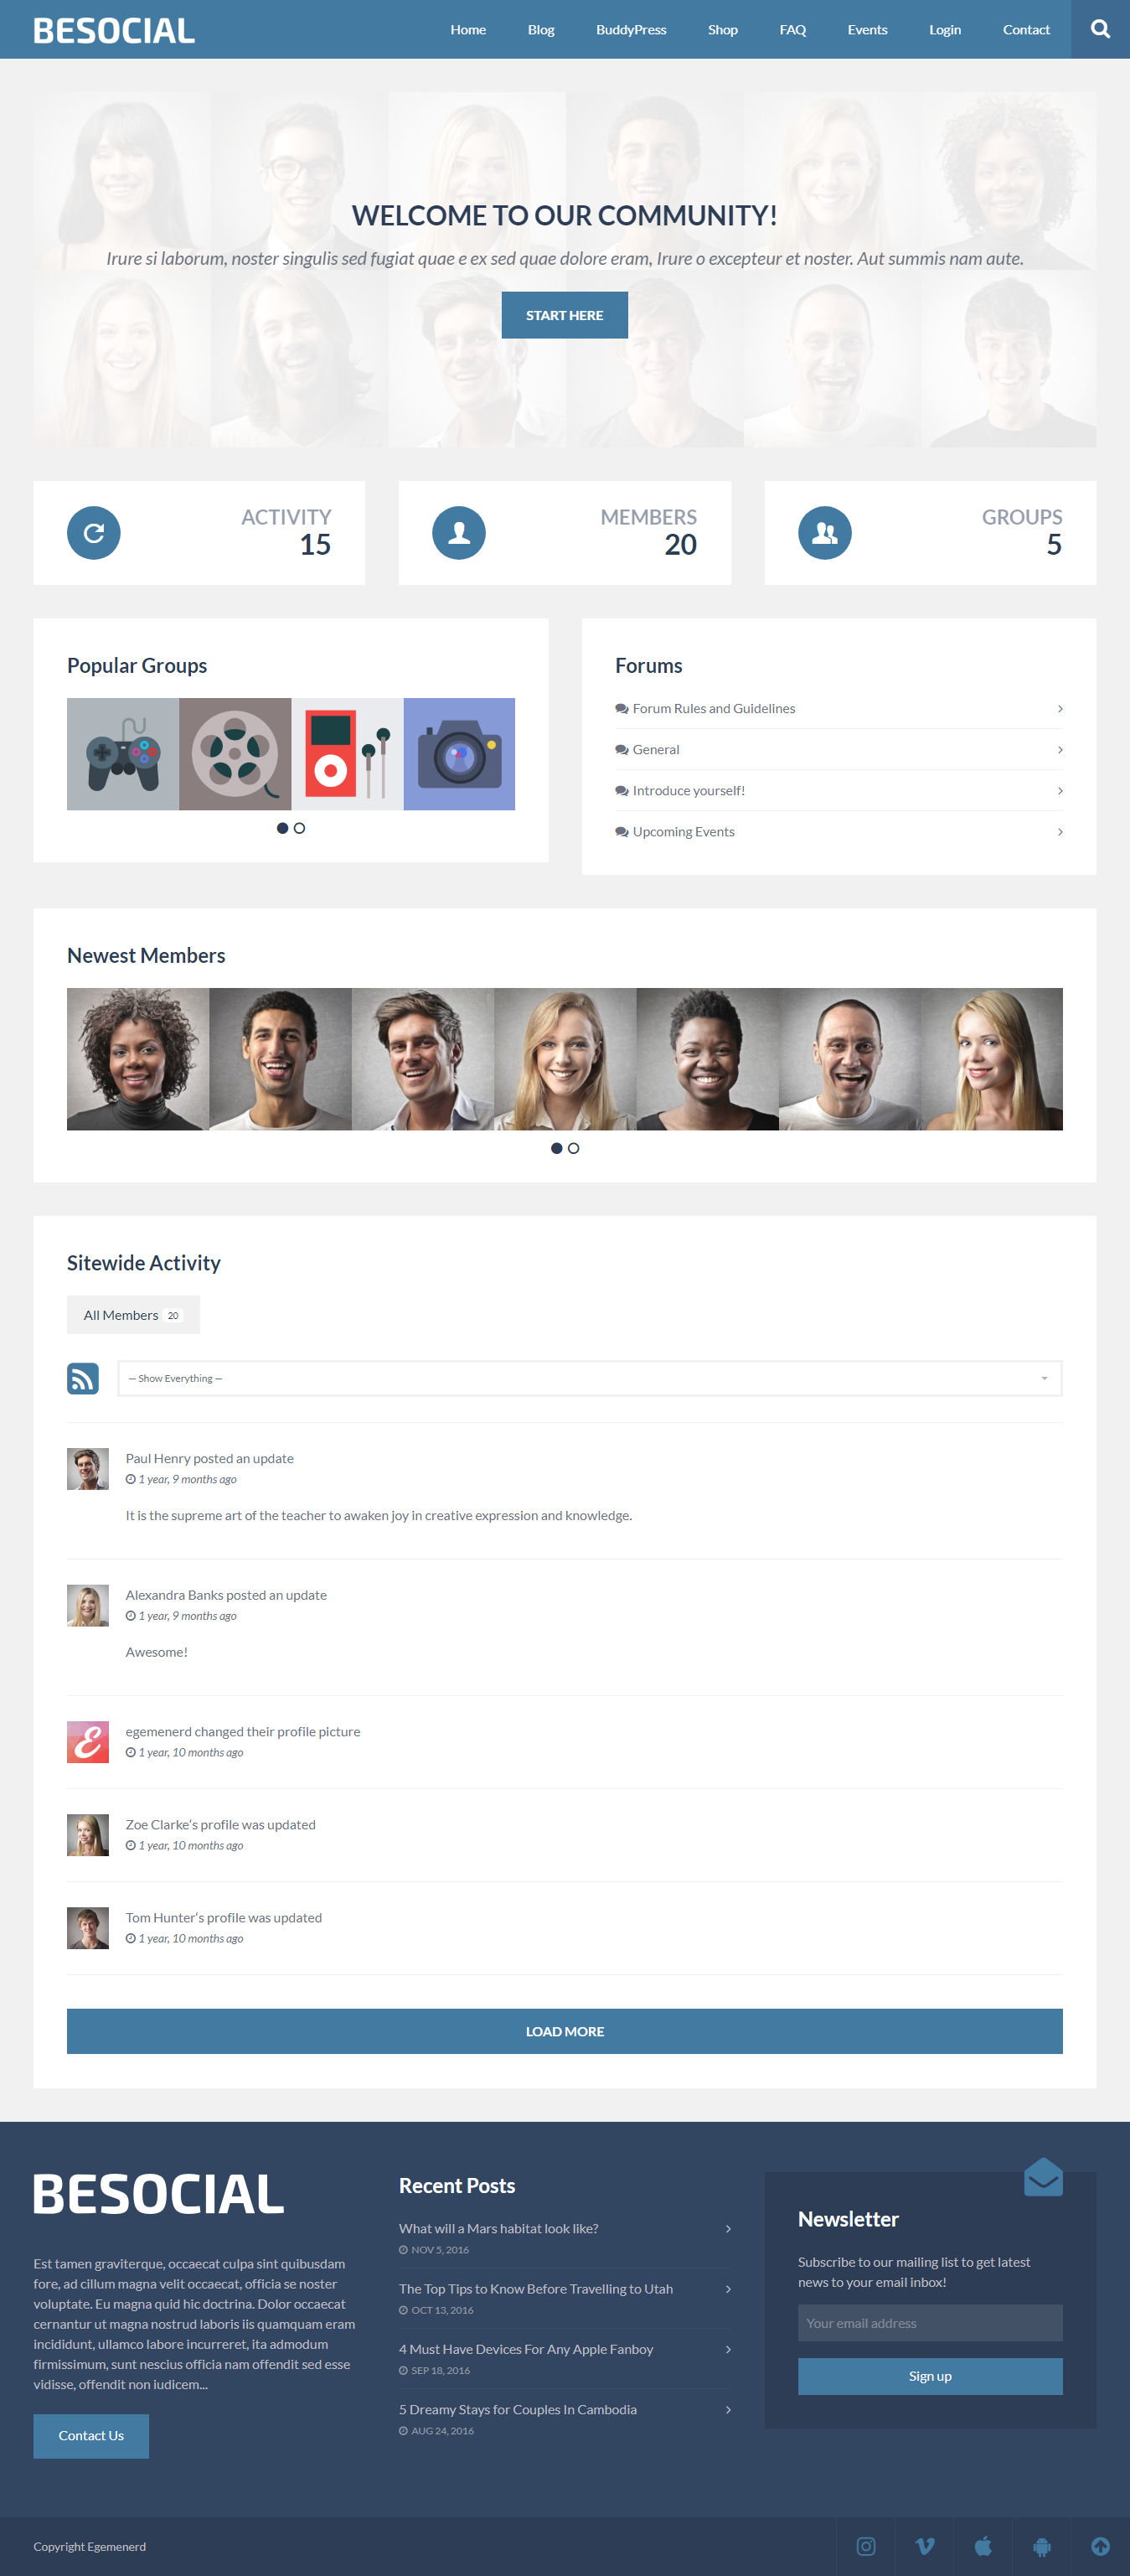 besocial best premium buddypress wordpress theme - 10+ Best Premium BuddyPress WordPress Themes